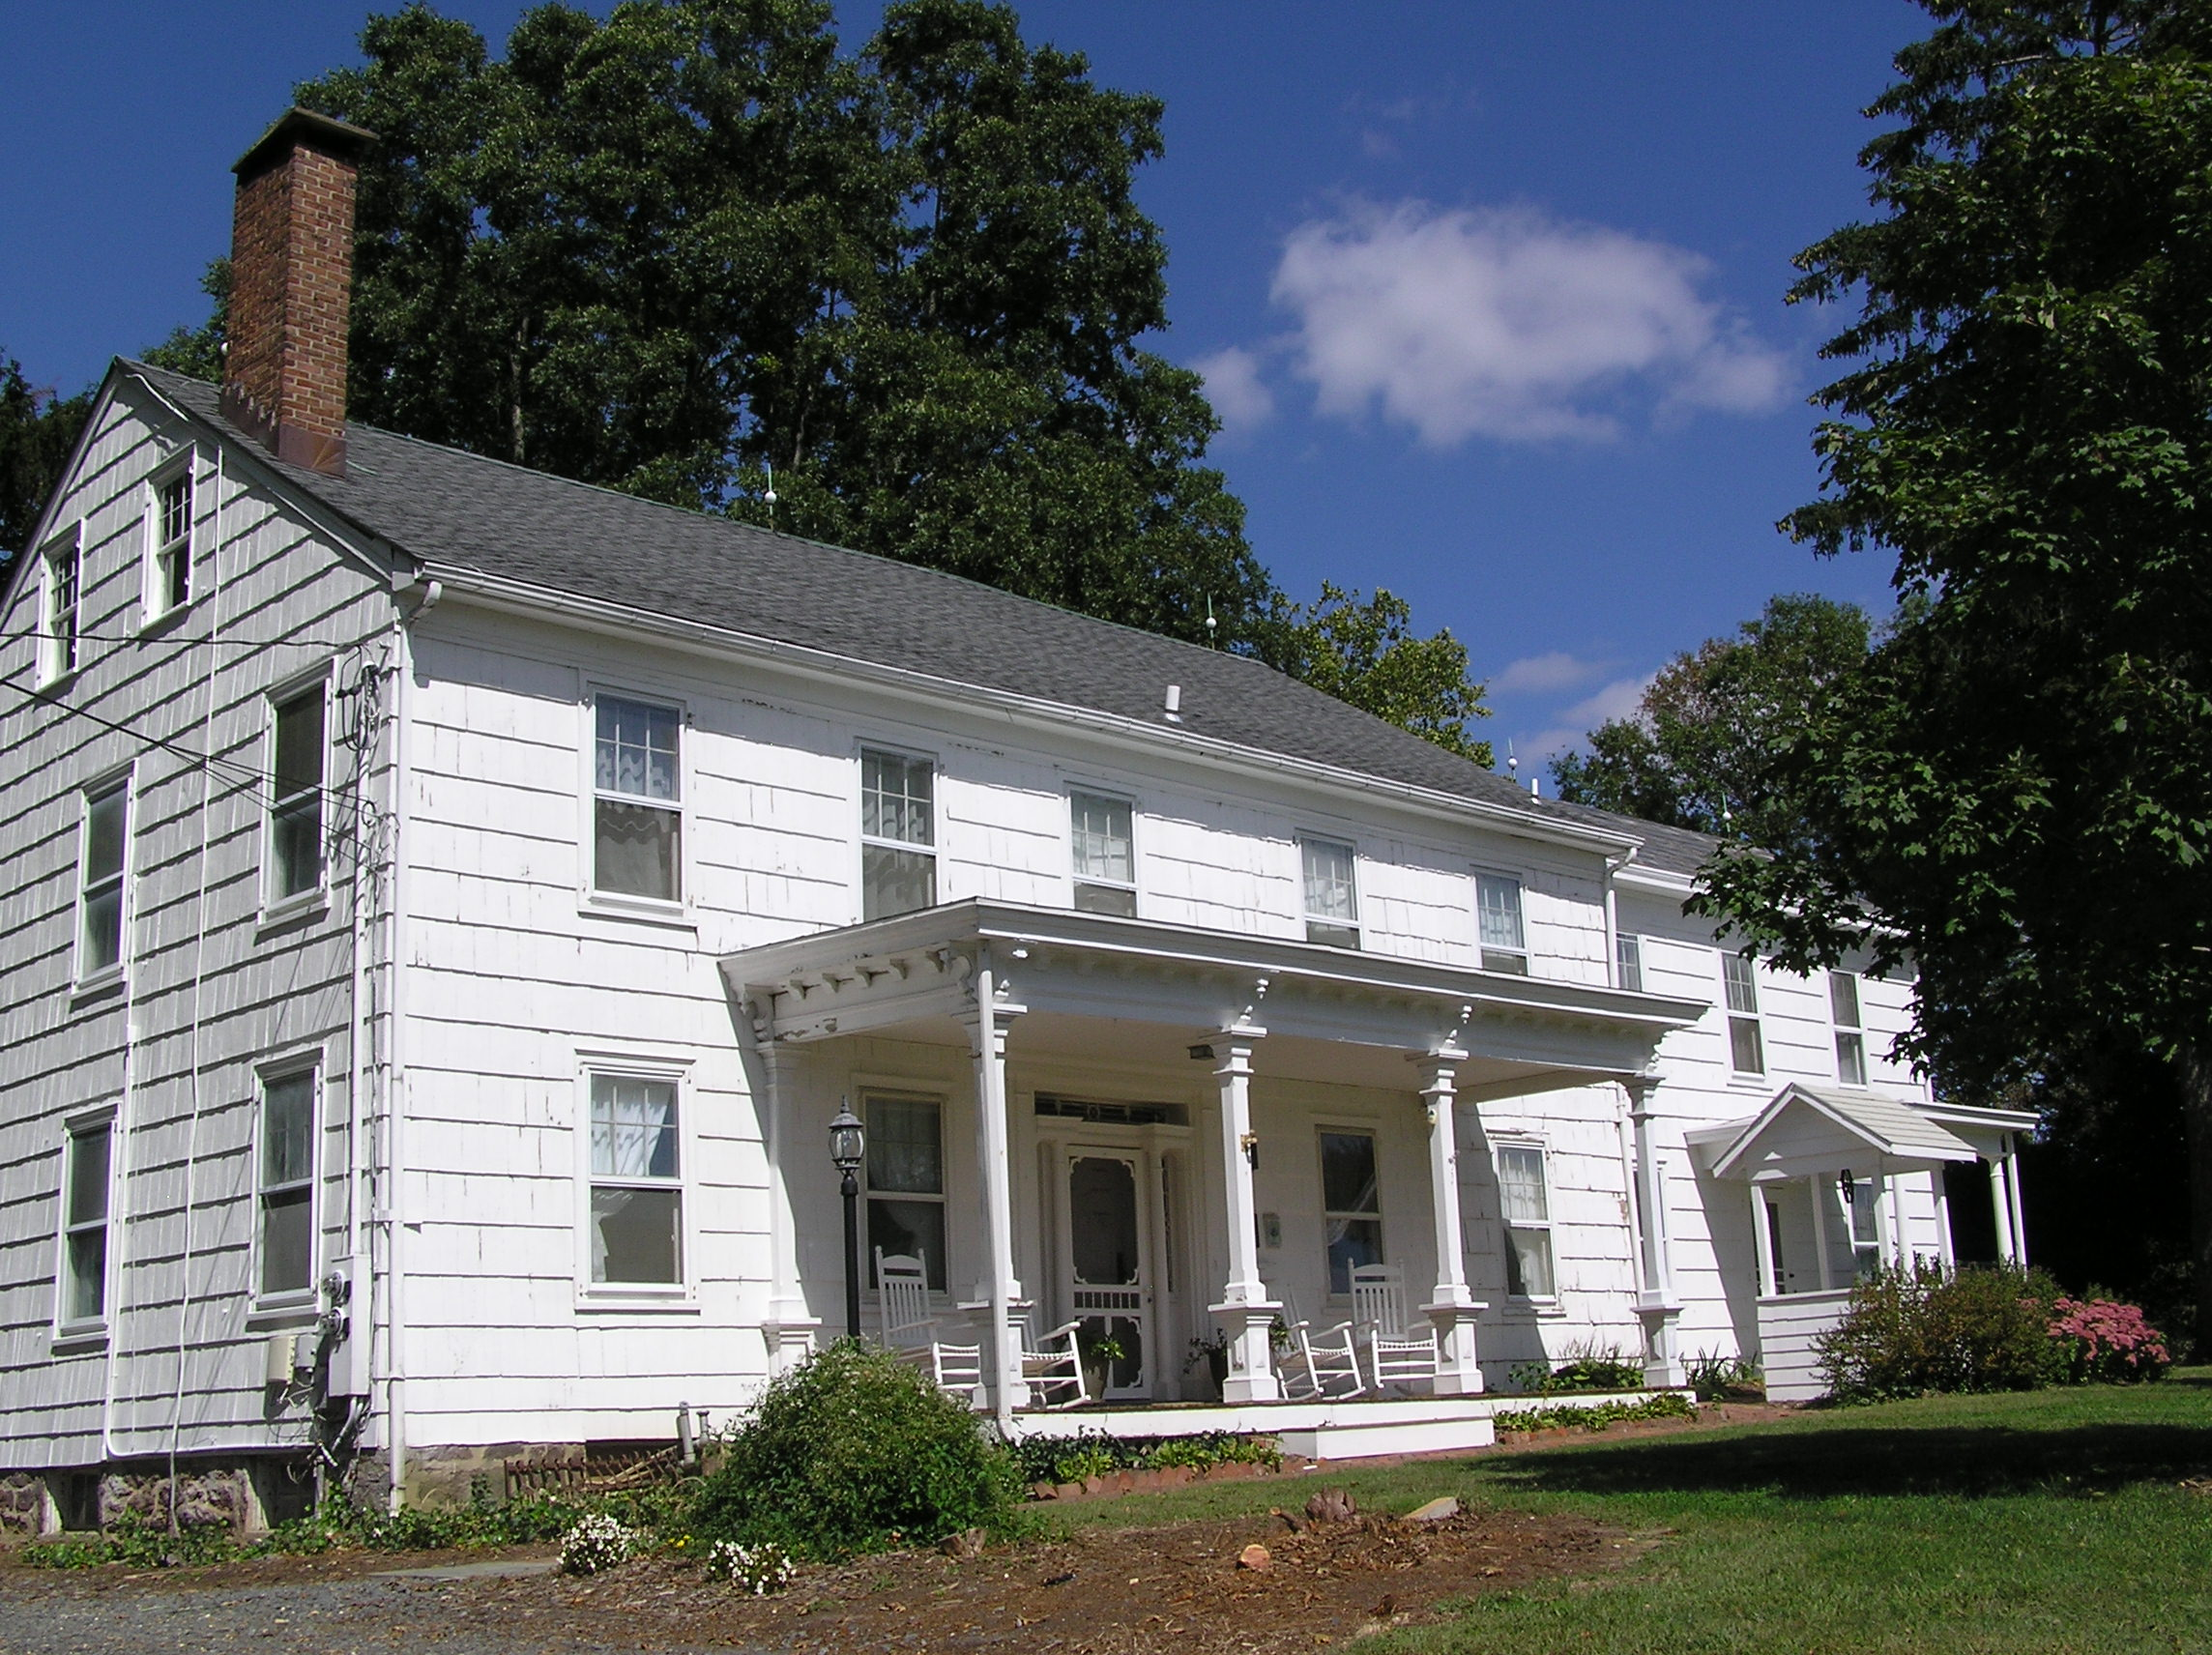 Freehold Township, New Jersey - Wikipedia